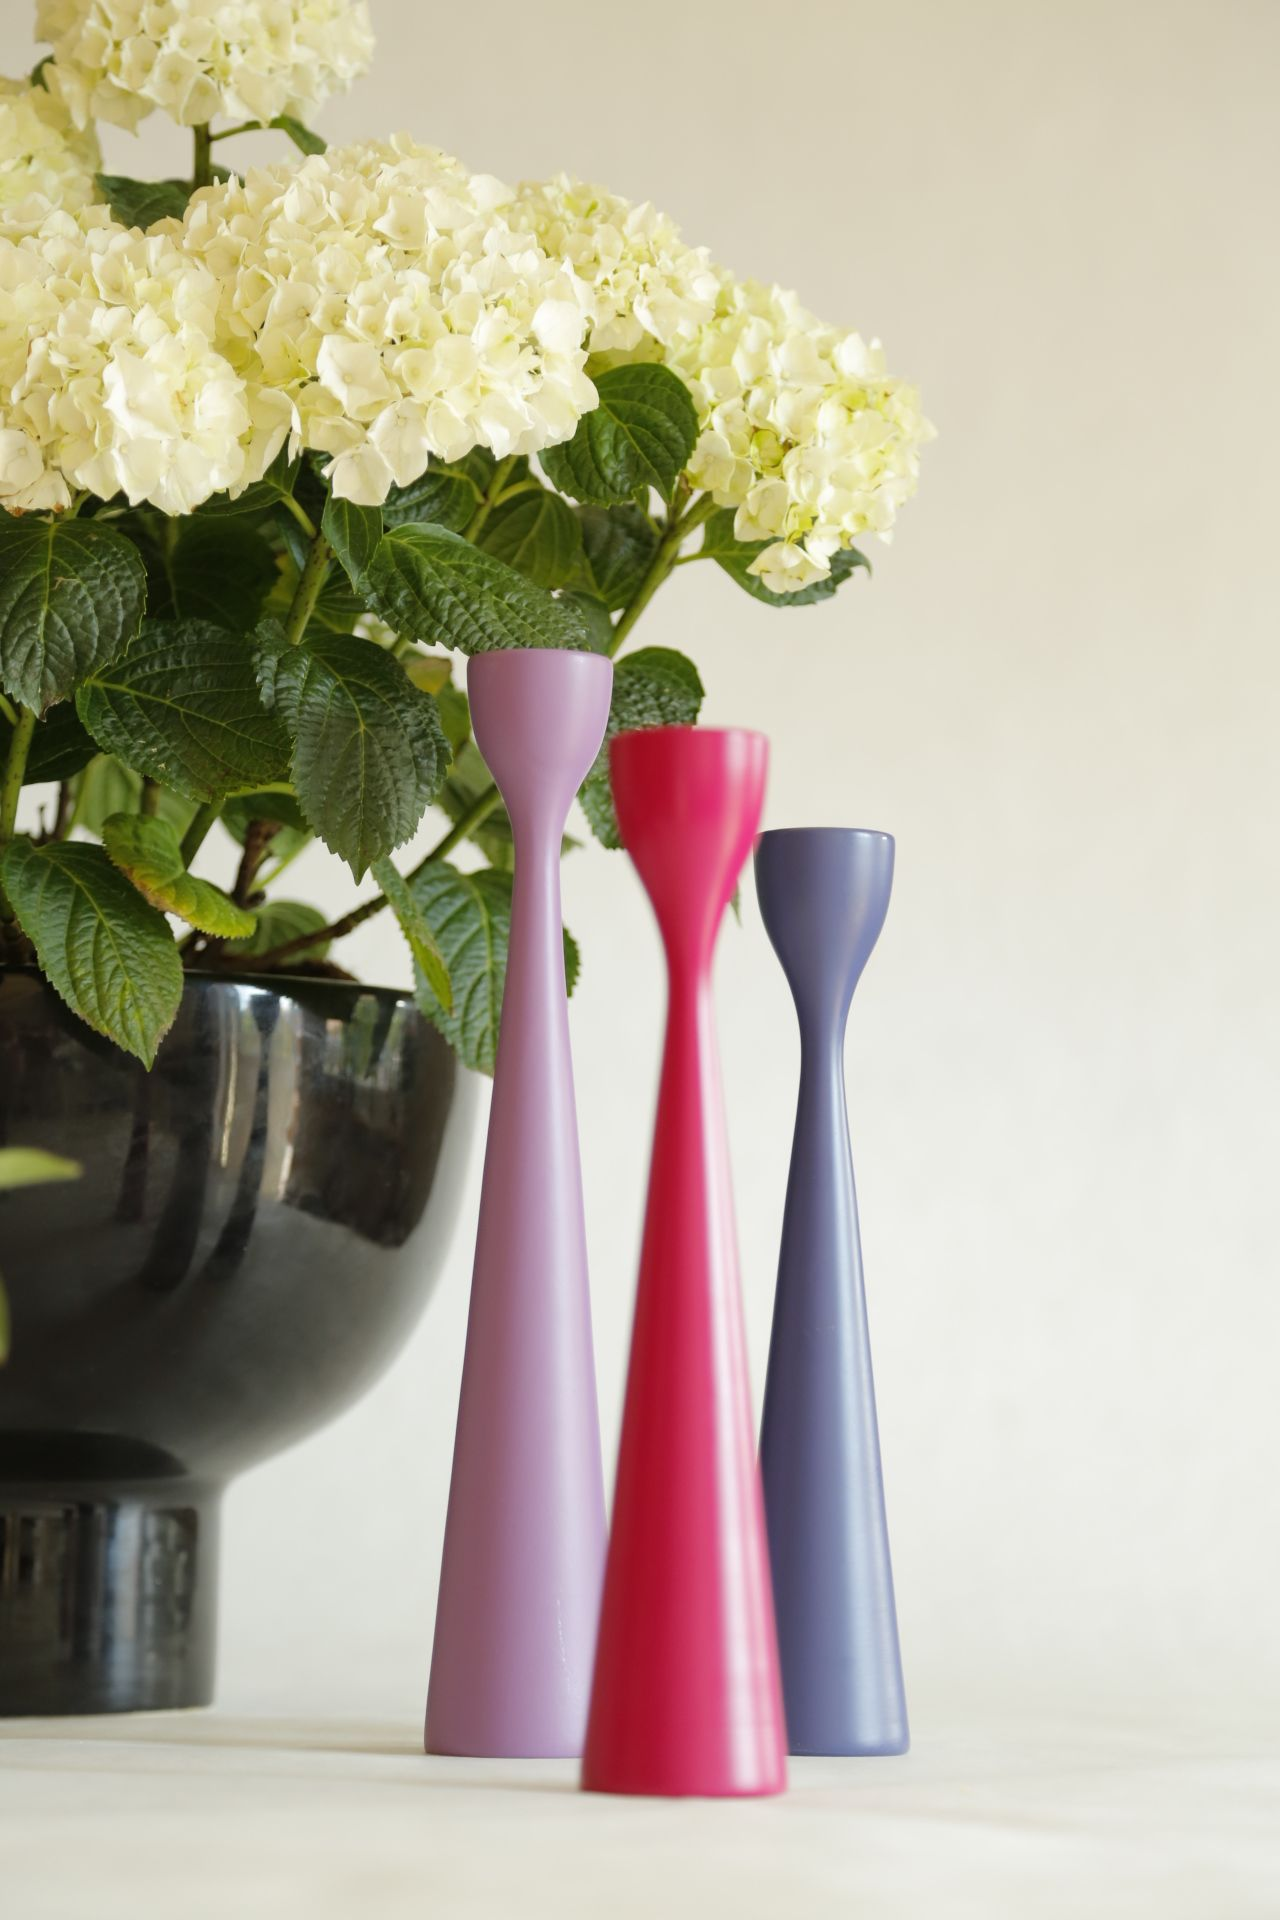 FREEMOVER.se - Scandinavian MIdsummer  - Rolf™ Wooden Candlesticks in New Mid-Century Modern Design by Maria Lovisa Dahlberg. 40 colors; Fuchsia, Lilac and Blueberry blue, Raw Oak and Certified Teak. Celebrating 10.